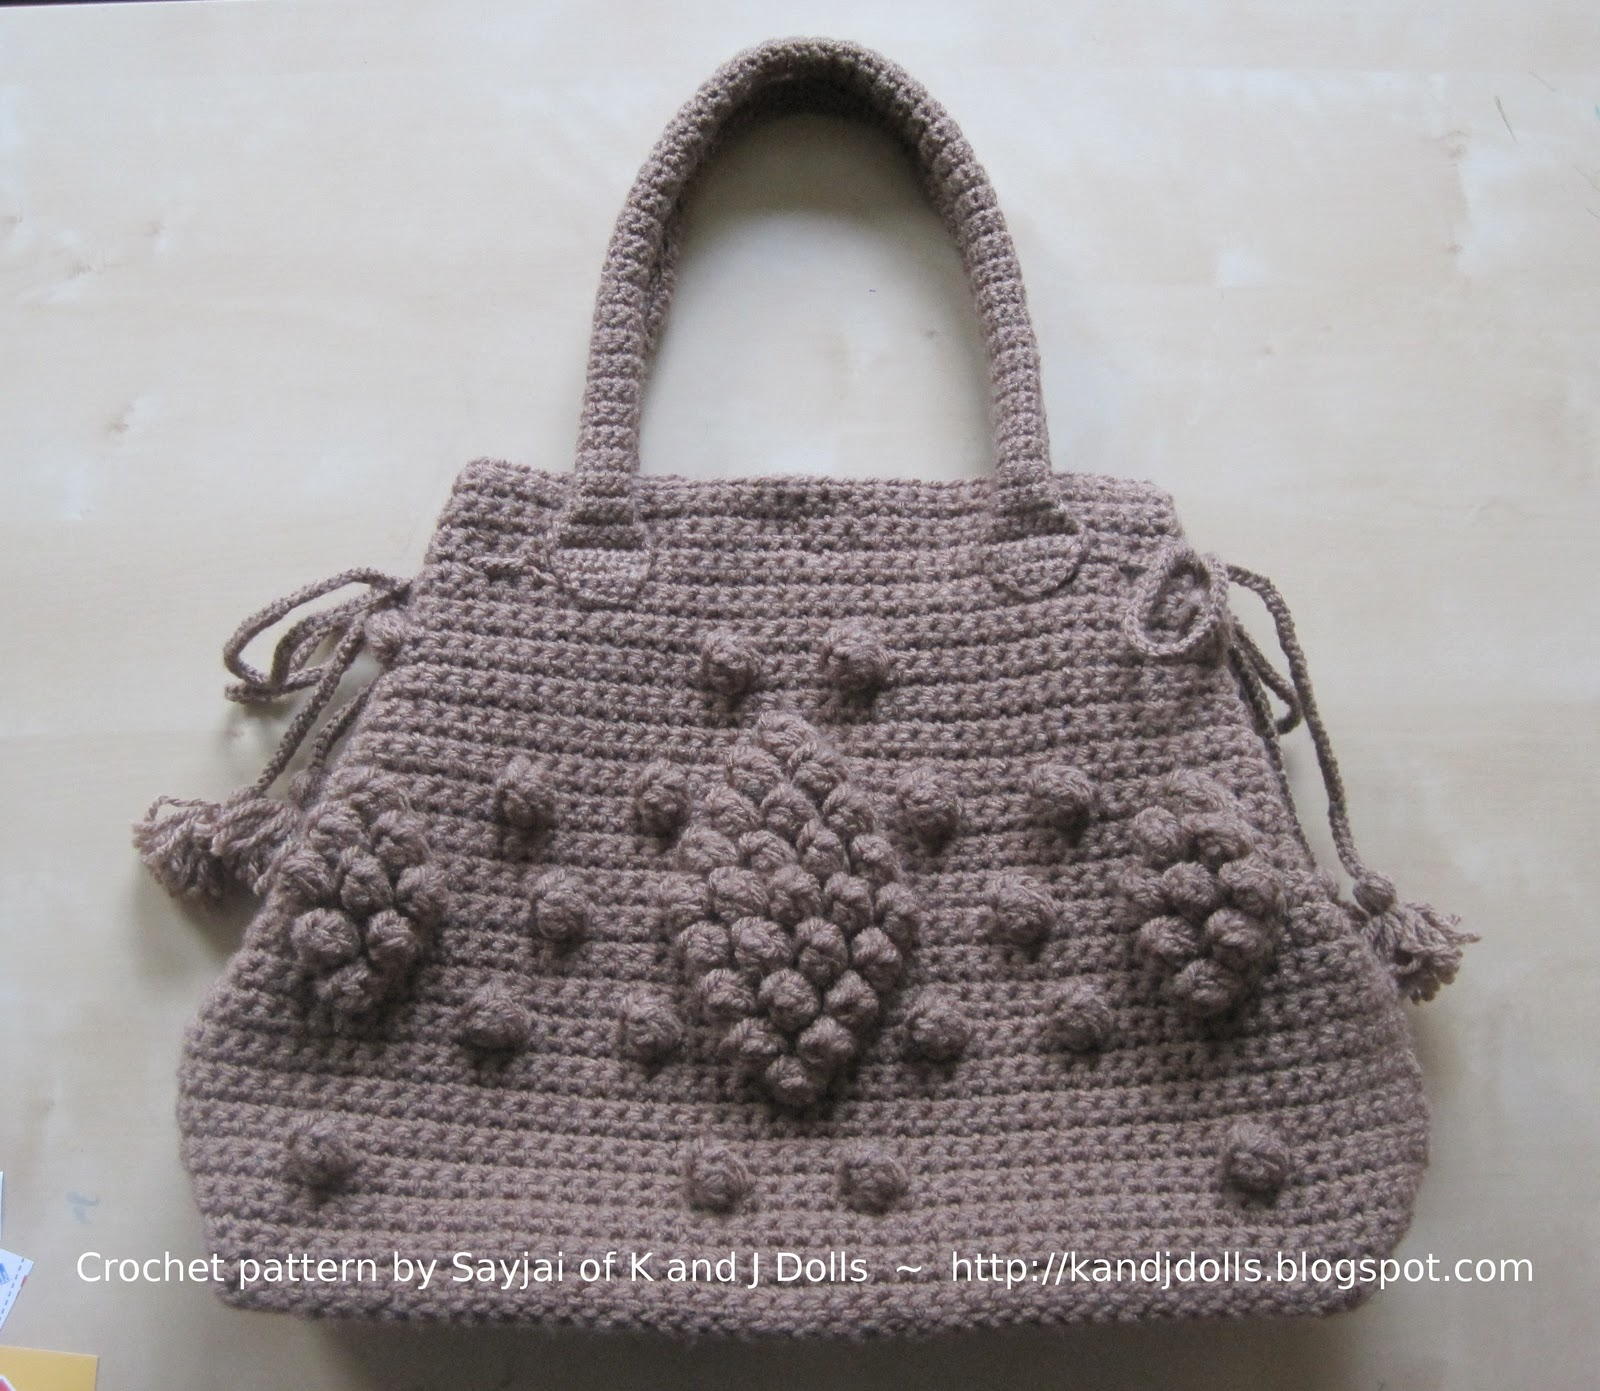 Click here for the free Taupe Bag crochet pattern.